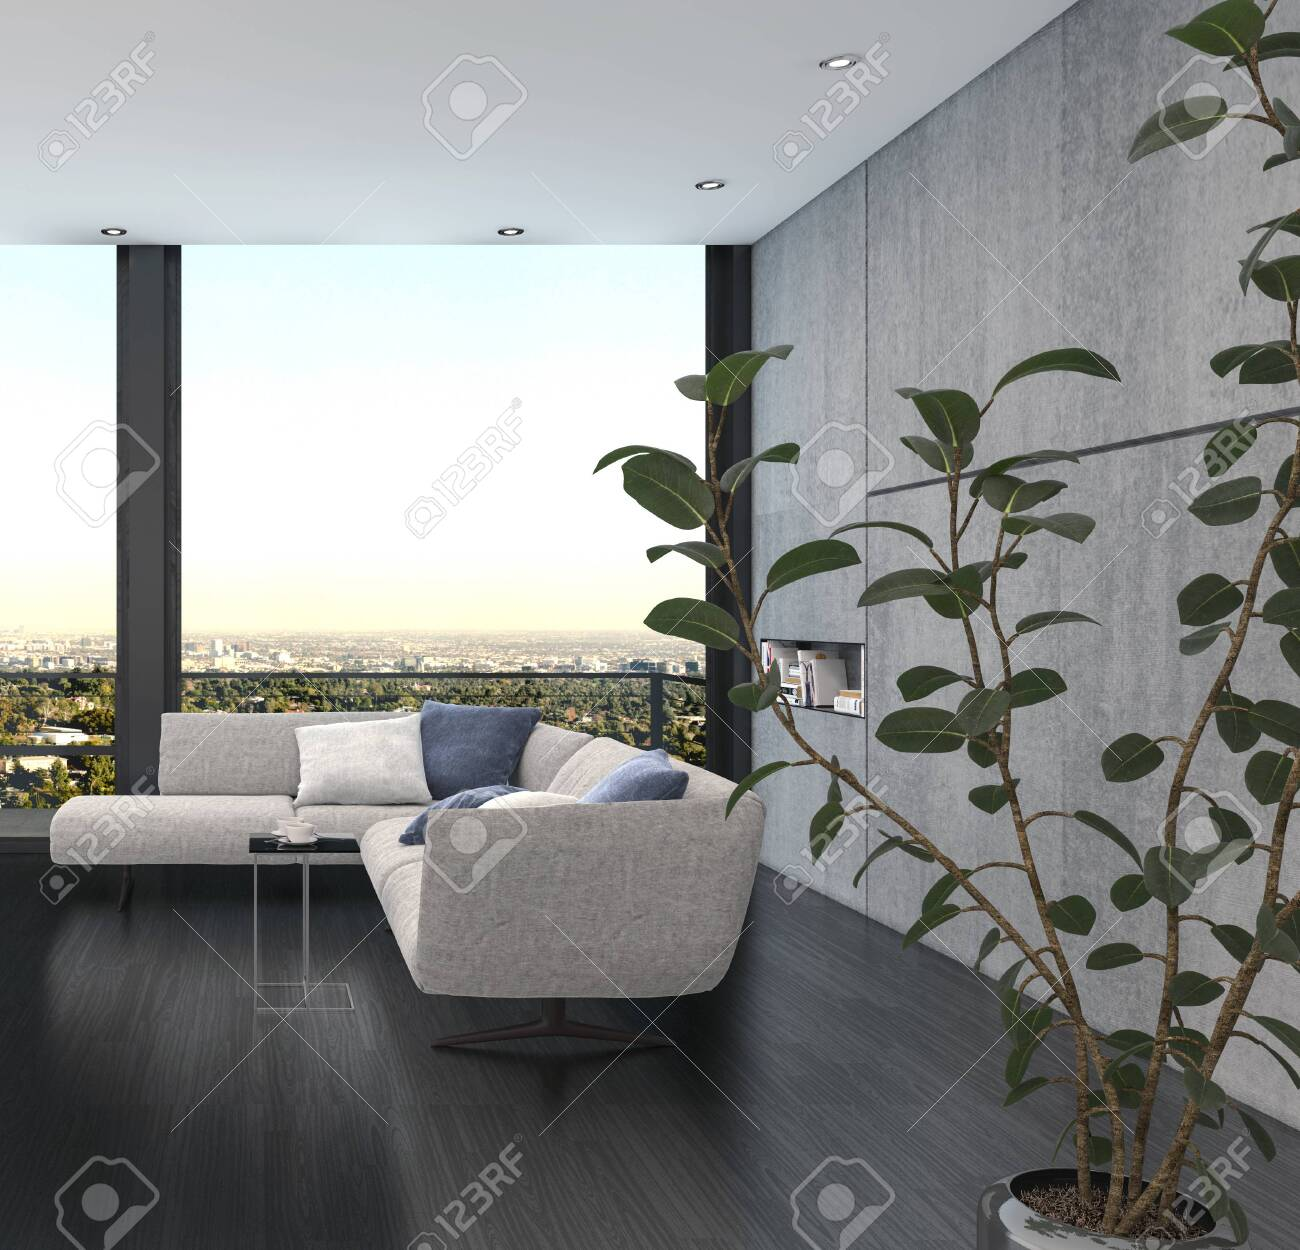 Minimalist interior design of a living room with corner couch of grey color against wide panoramic window and the indoor plant with green leaves in foreground - 142466283